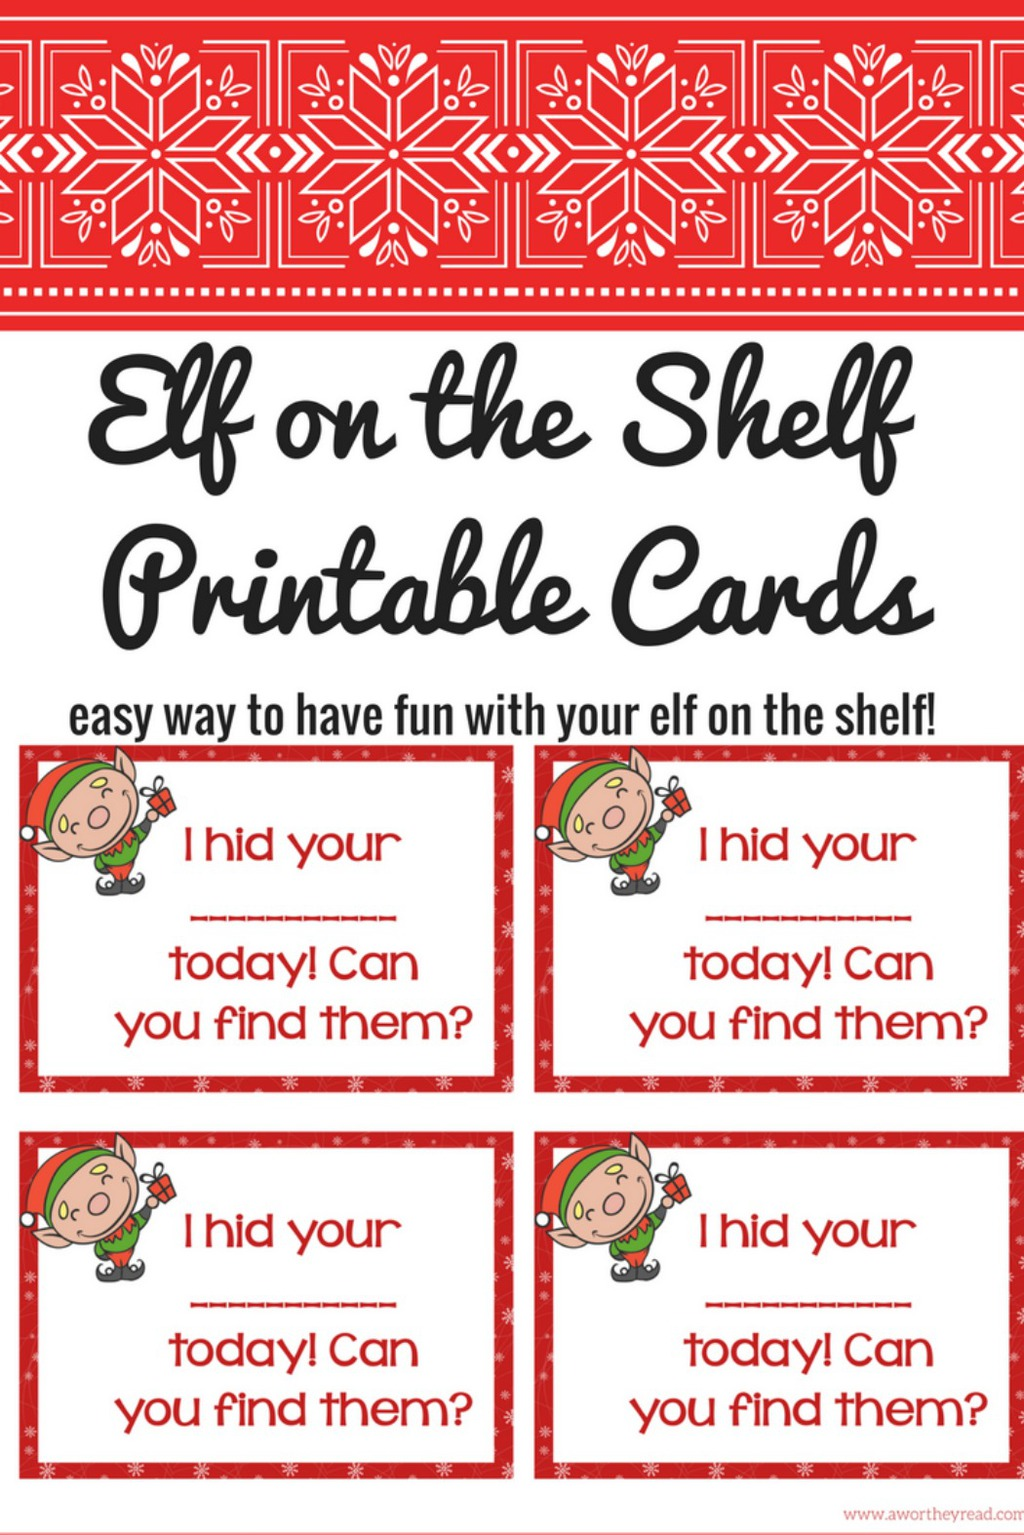 Check out these Elf On The Shelf Ideas with Printable Cards to give you a break from posing your Elf every day! Print our cards and add to your routine!